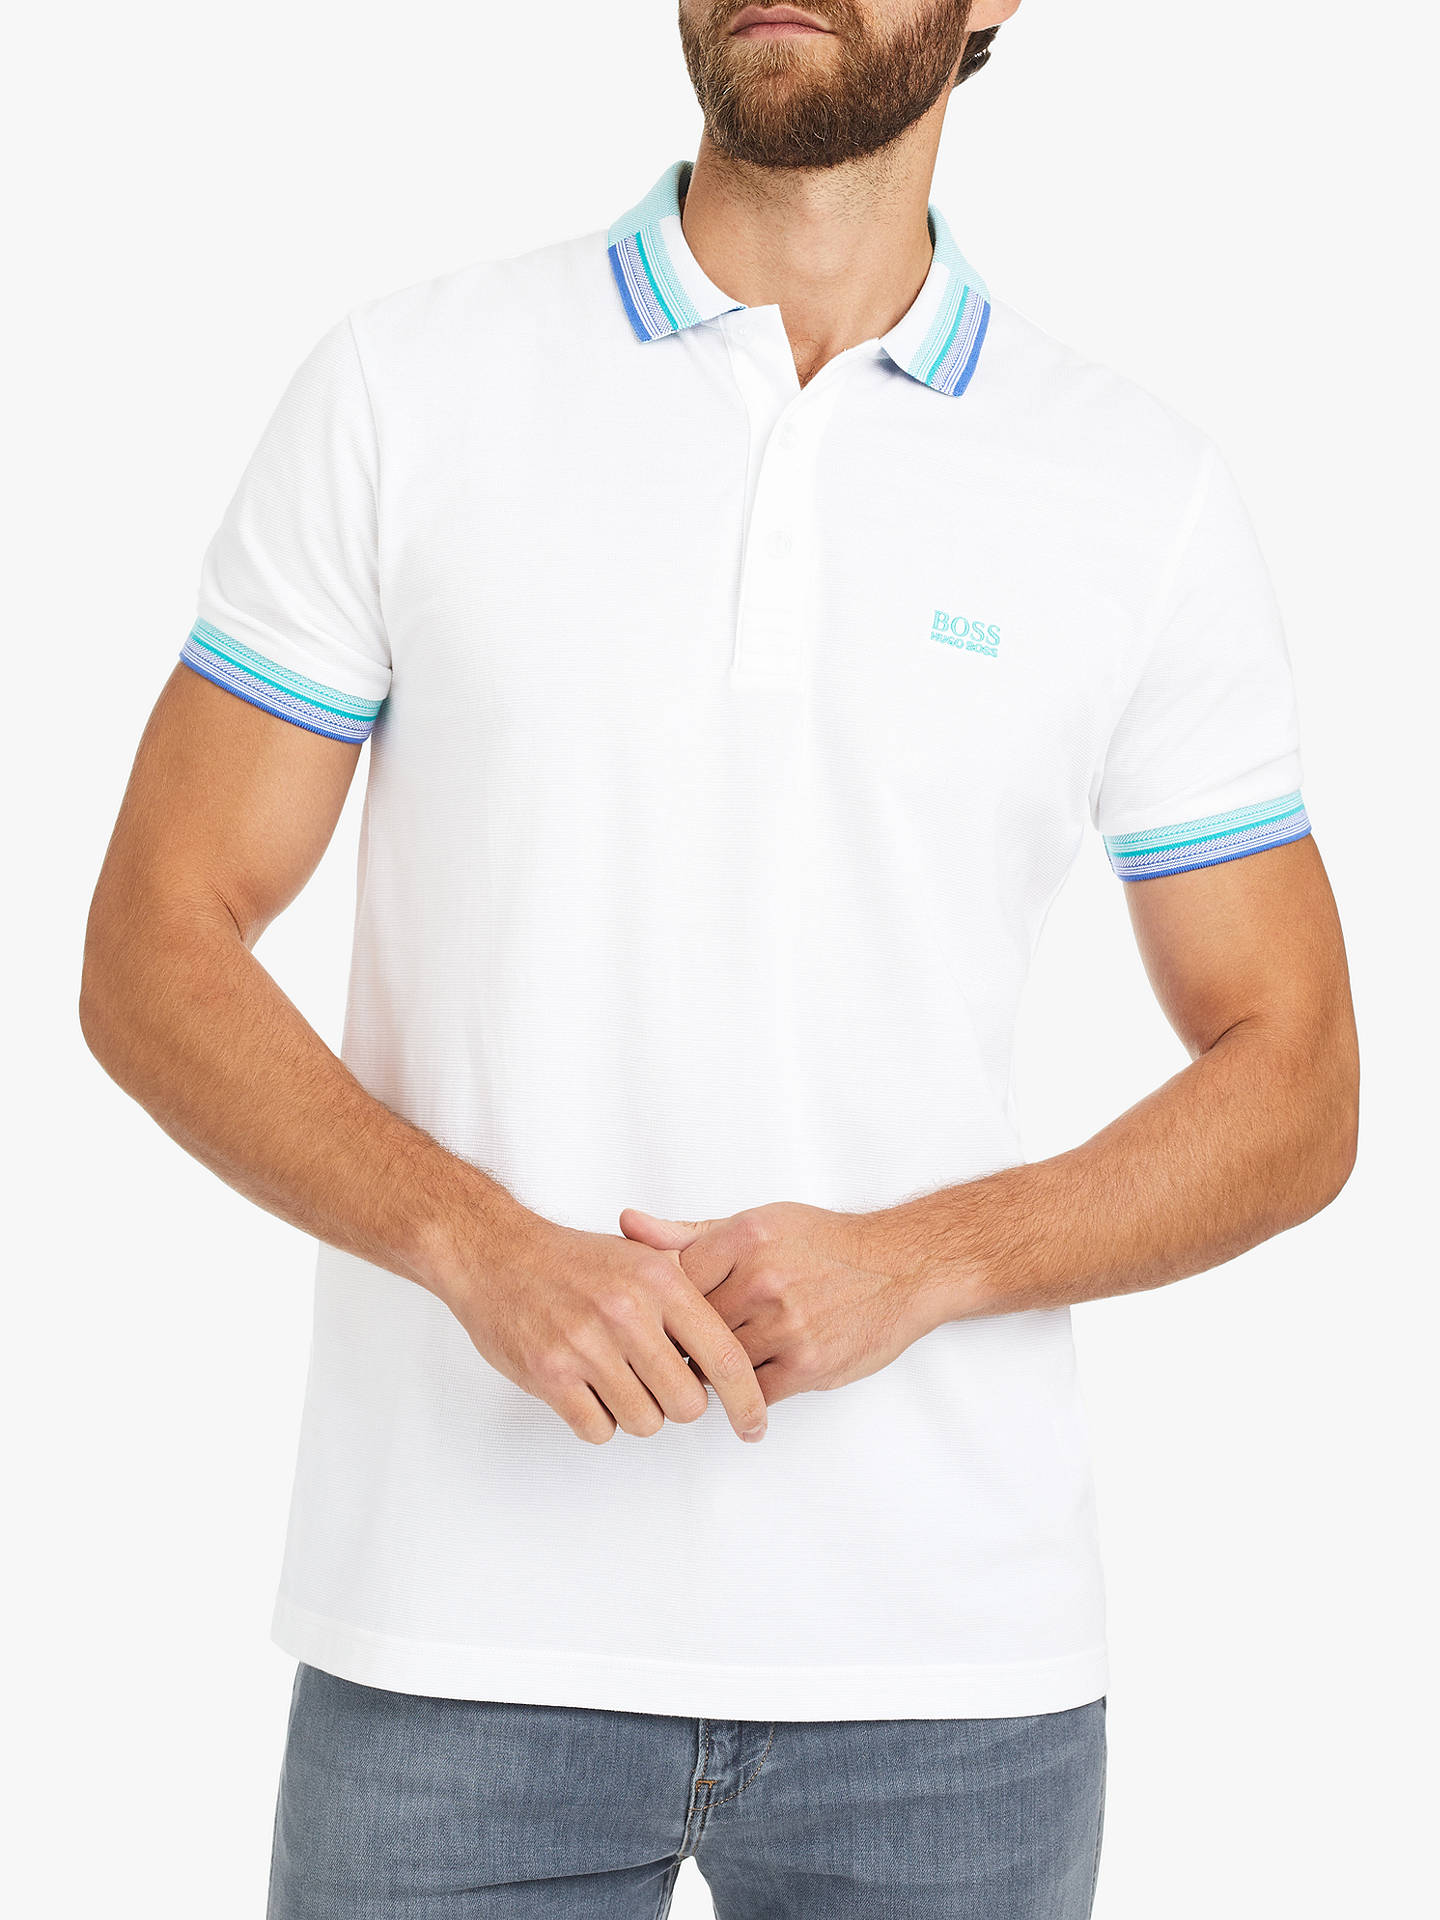 5d3aaadde BOSS Paddy Cotton Polo Shirt, White at John Lewis & Partners